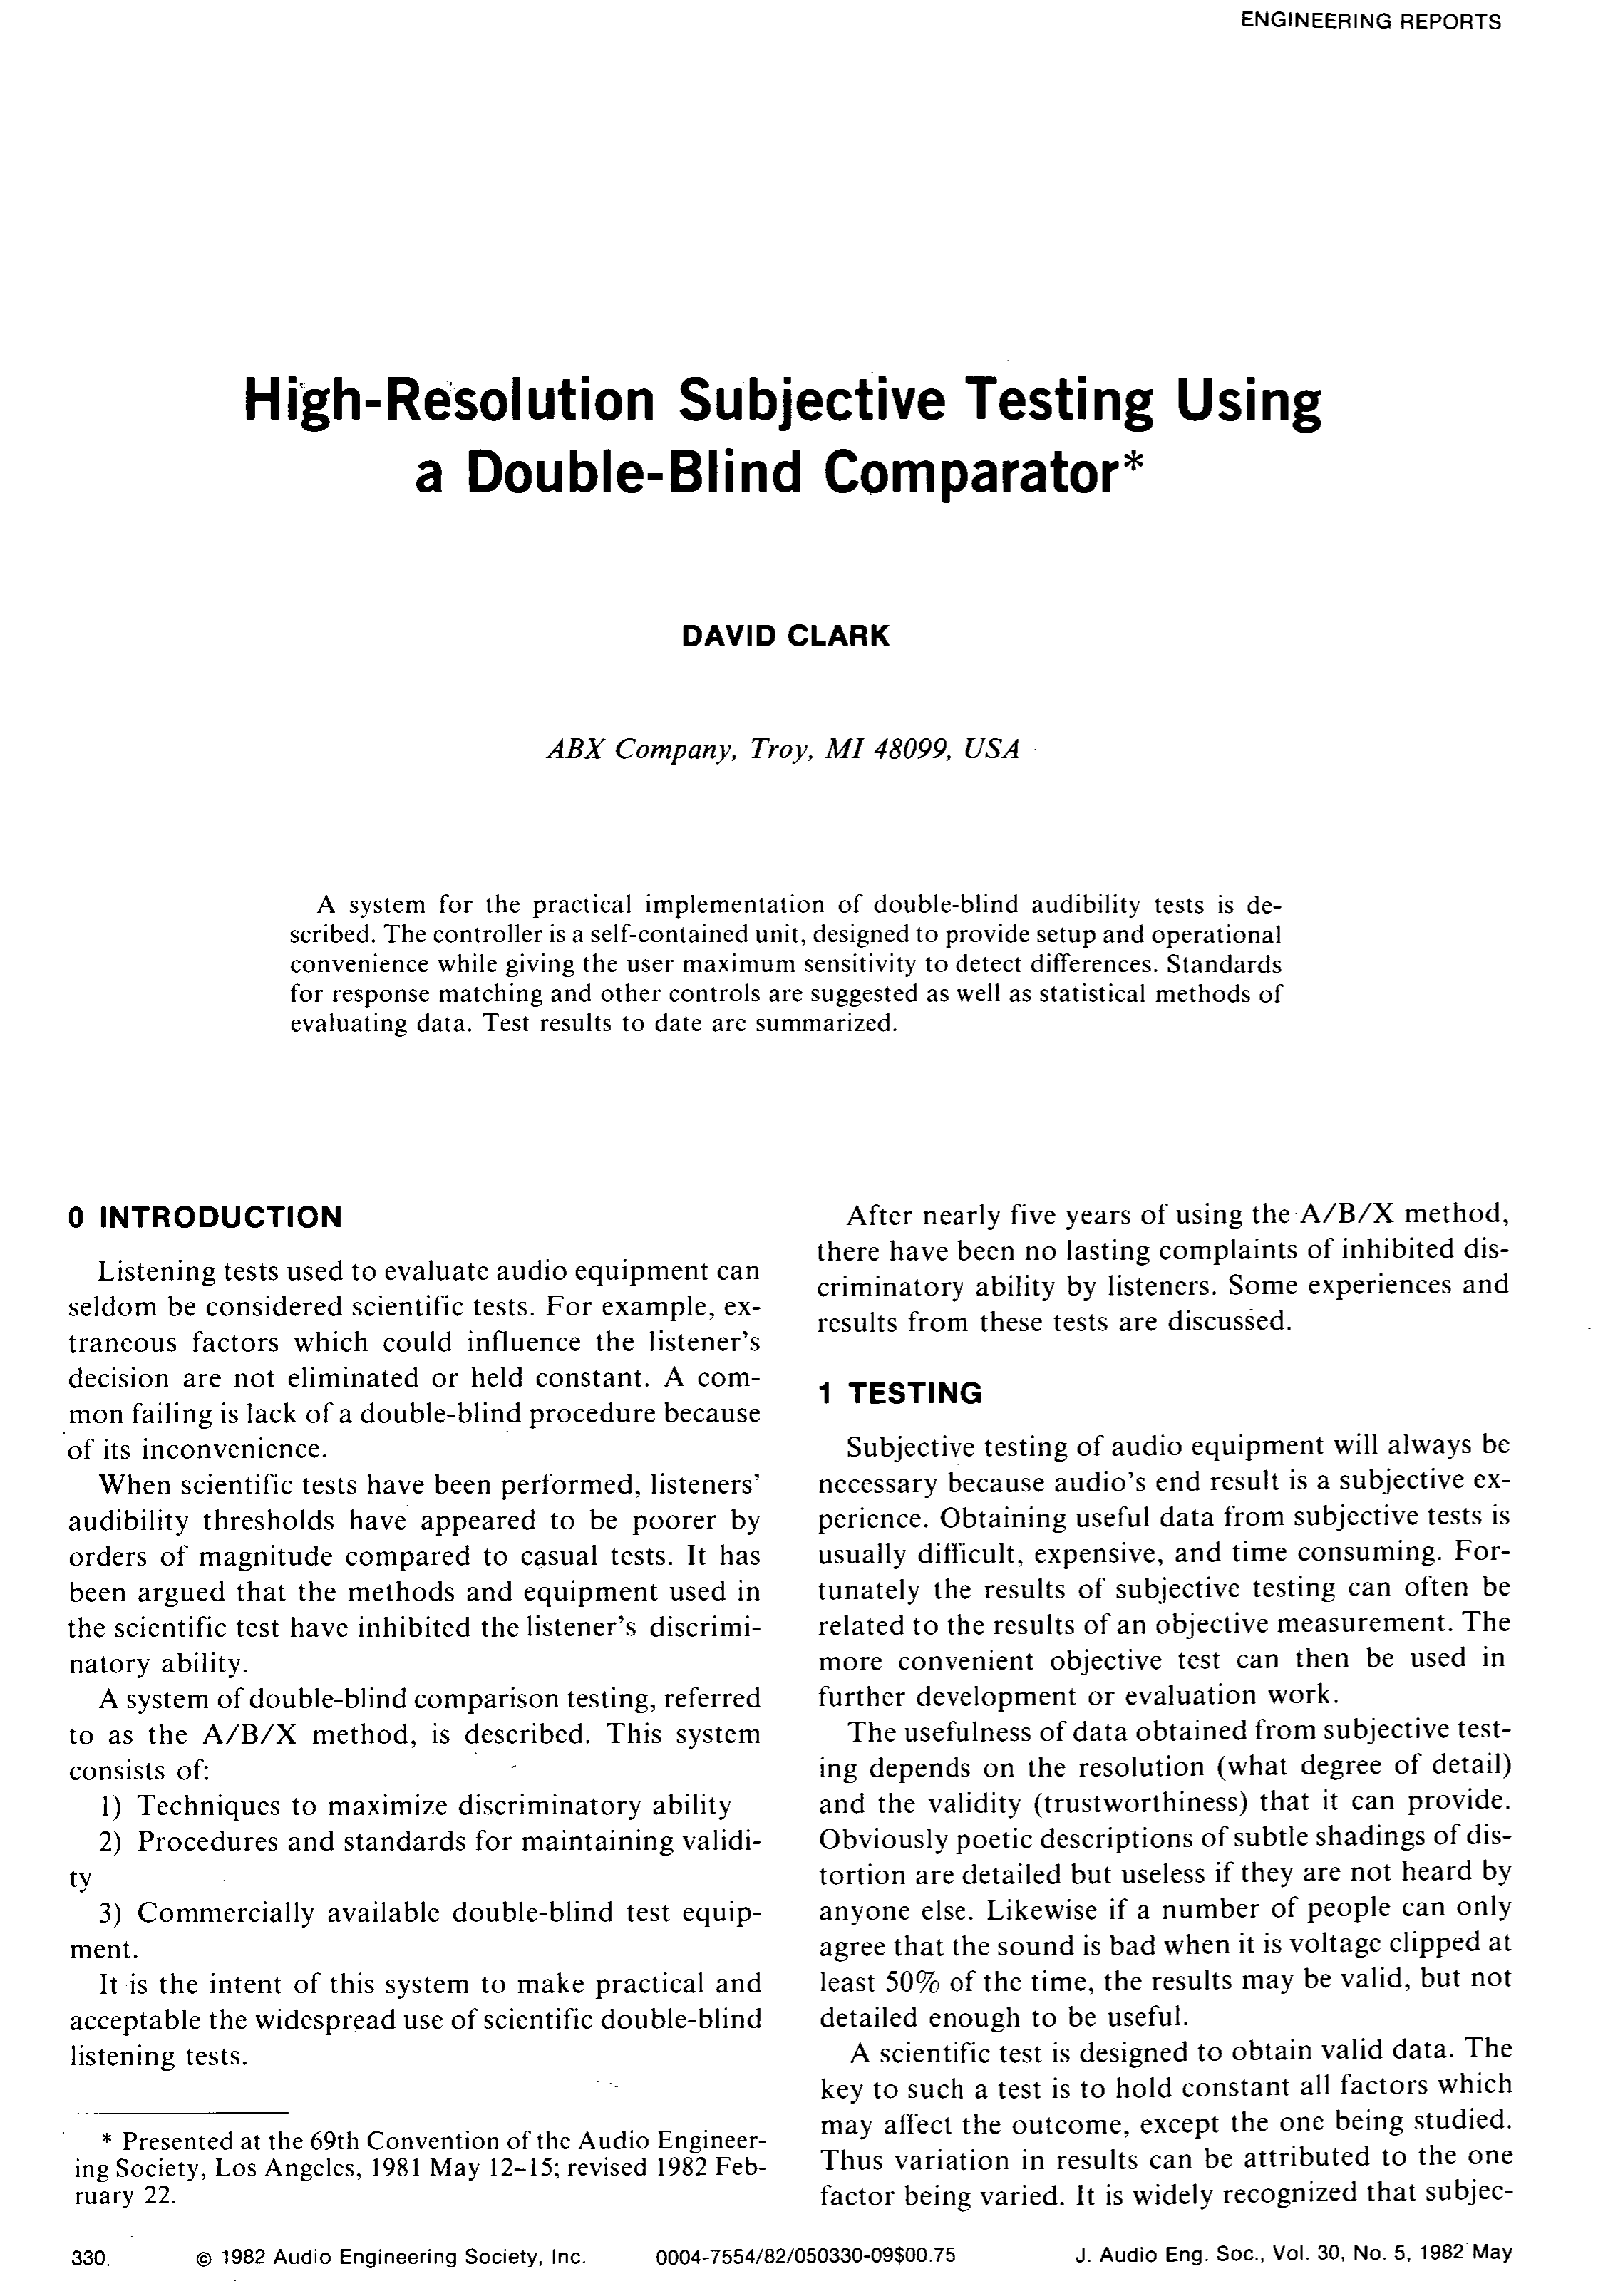 AES E-Library » High-Resolution Subjective Testing Using a Double ...